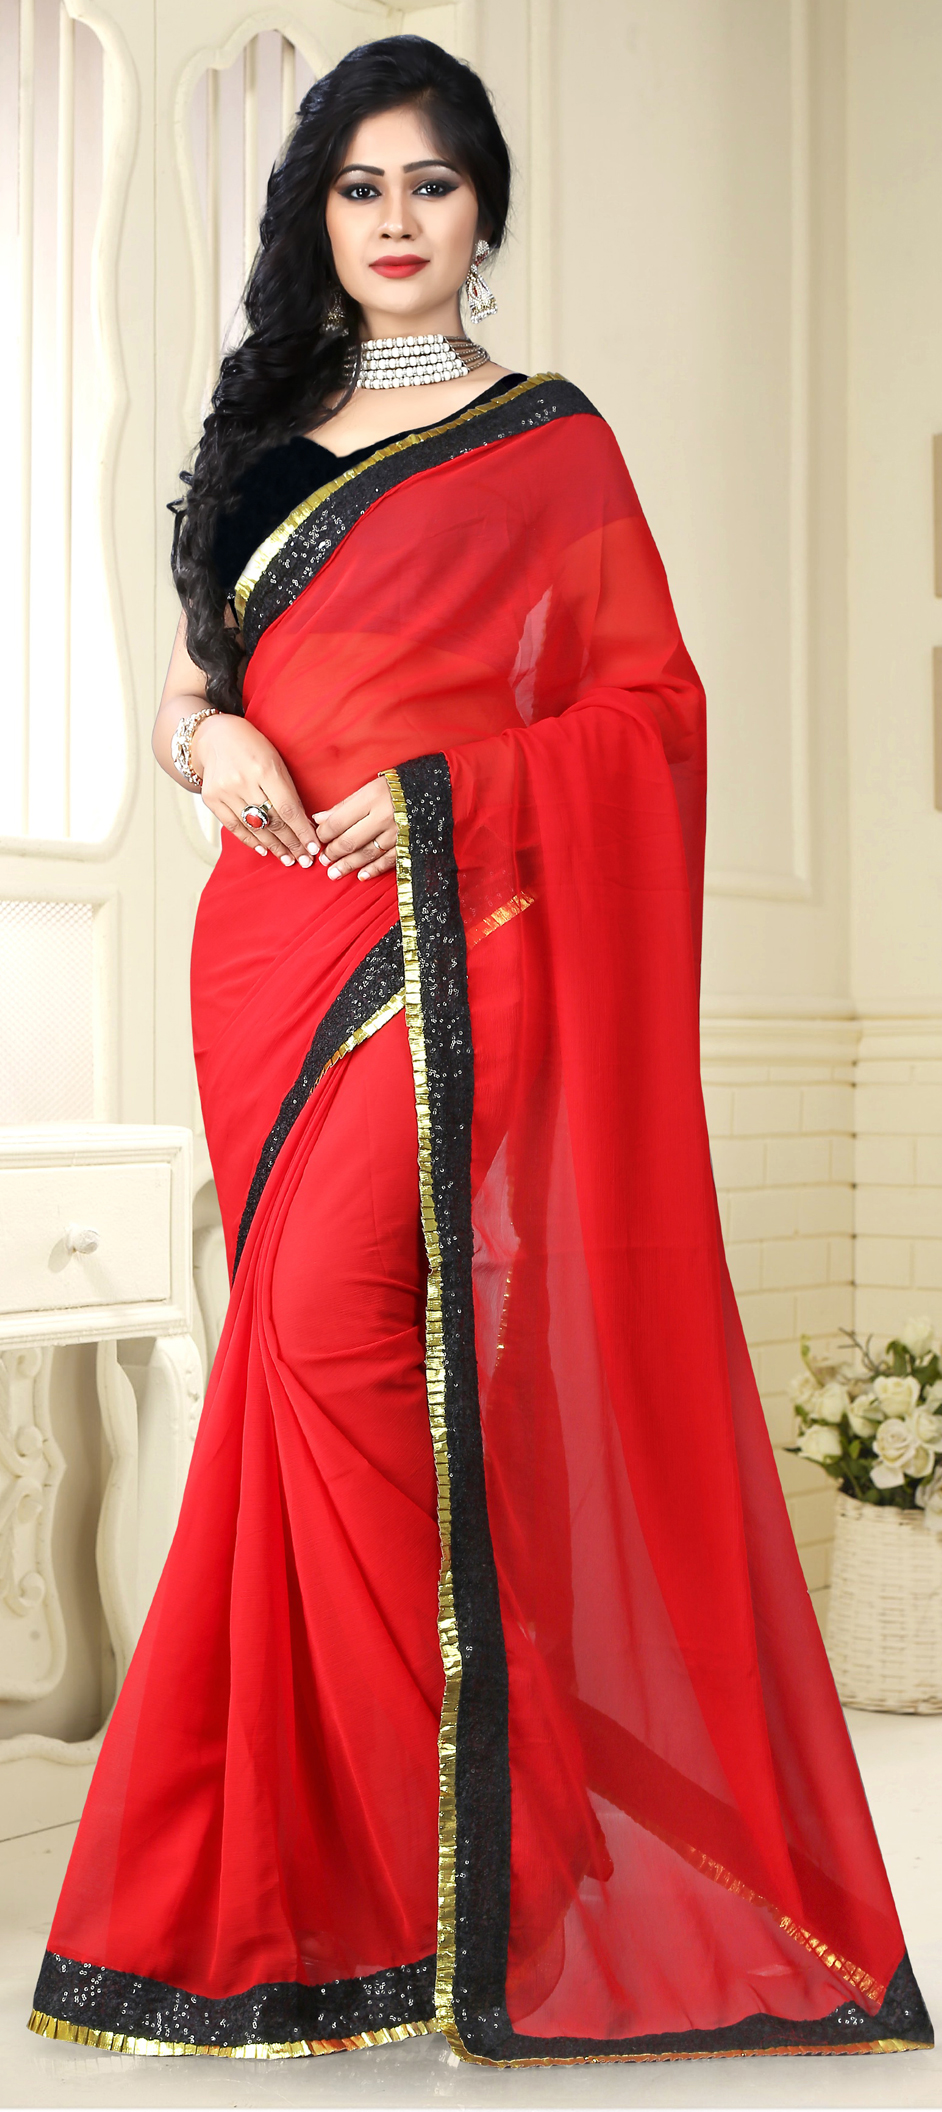 724281: Red and Maroon color family Party Wear Sarees with matching ...